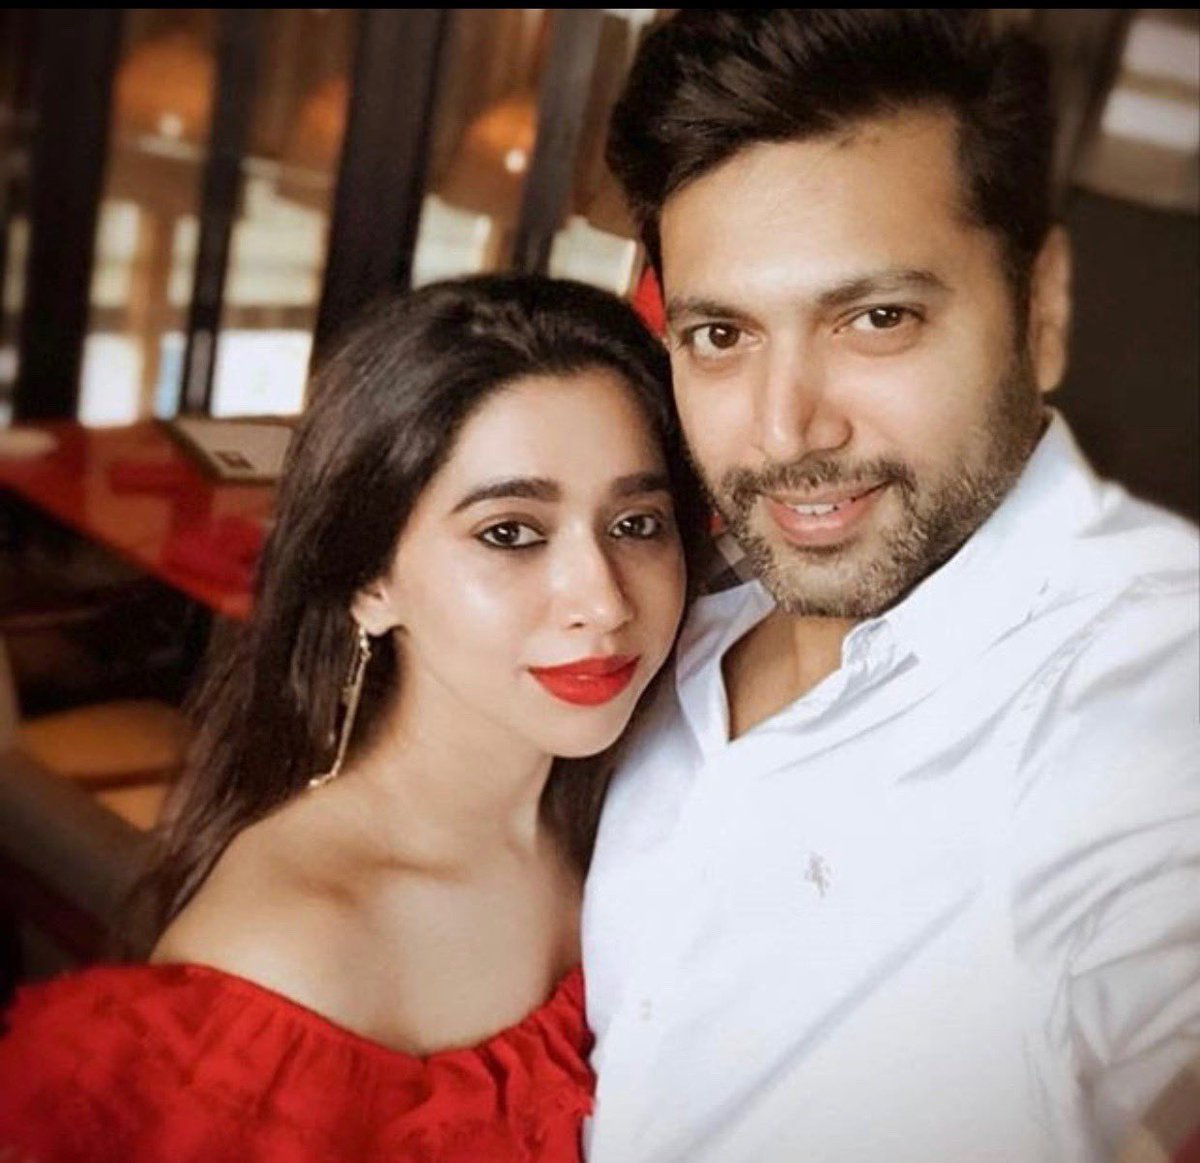 Wishing my fav couple.. my very own family.. my darling ⁦@actor_jayamravi⁩ and his beautiful wife #Aartu a very happy anniversary.. may both be blessed with many many more years of happiness n togetherness..love you both ❤️❤️❤️😘😘😘😘💕💕💕💕💝💝💝💝🎂🎂🎂🎂🎂